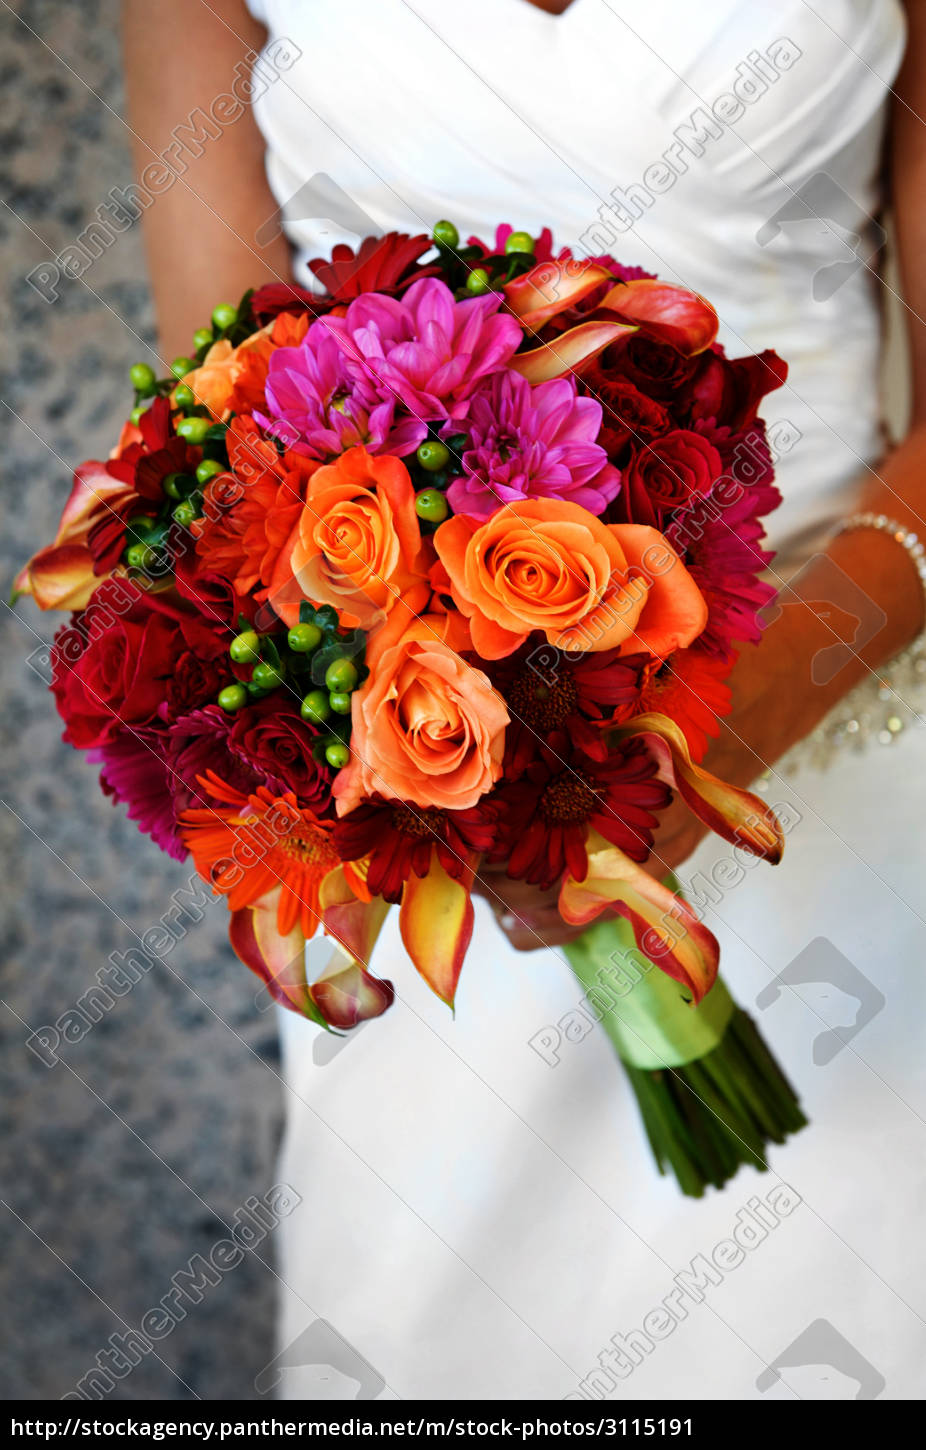 bride, holding, colorful, large, bouquet - 3115191